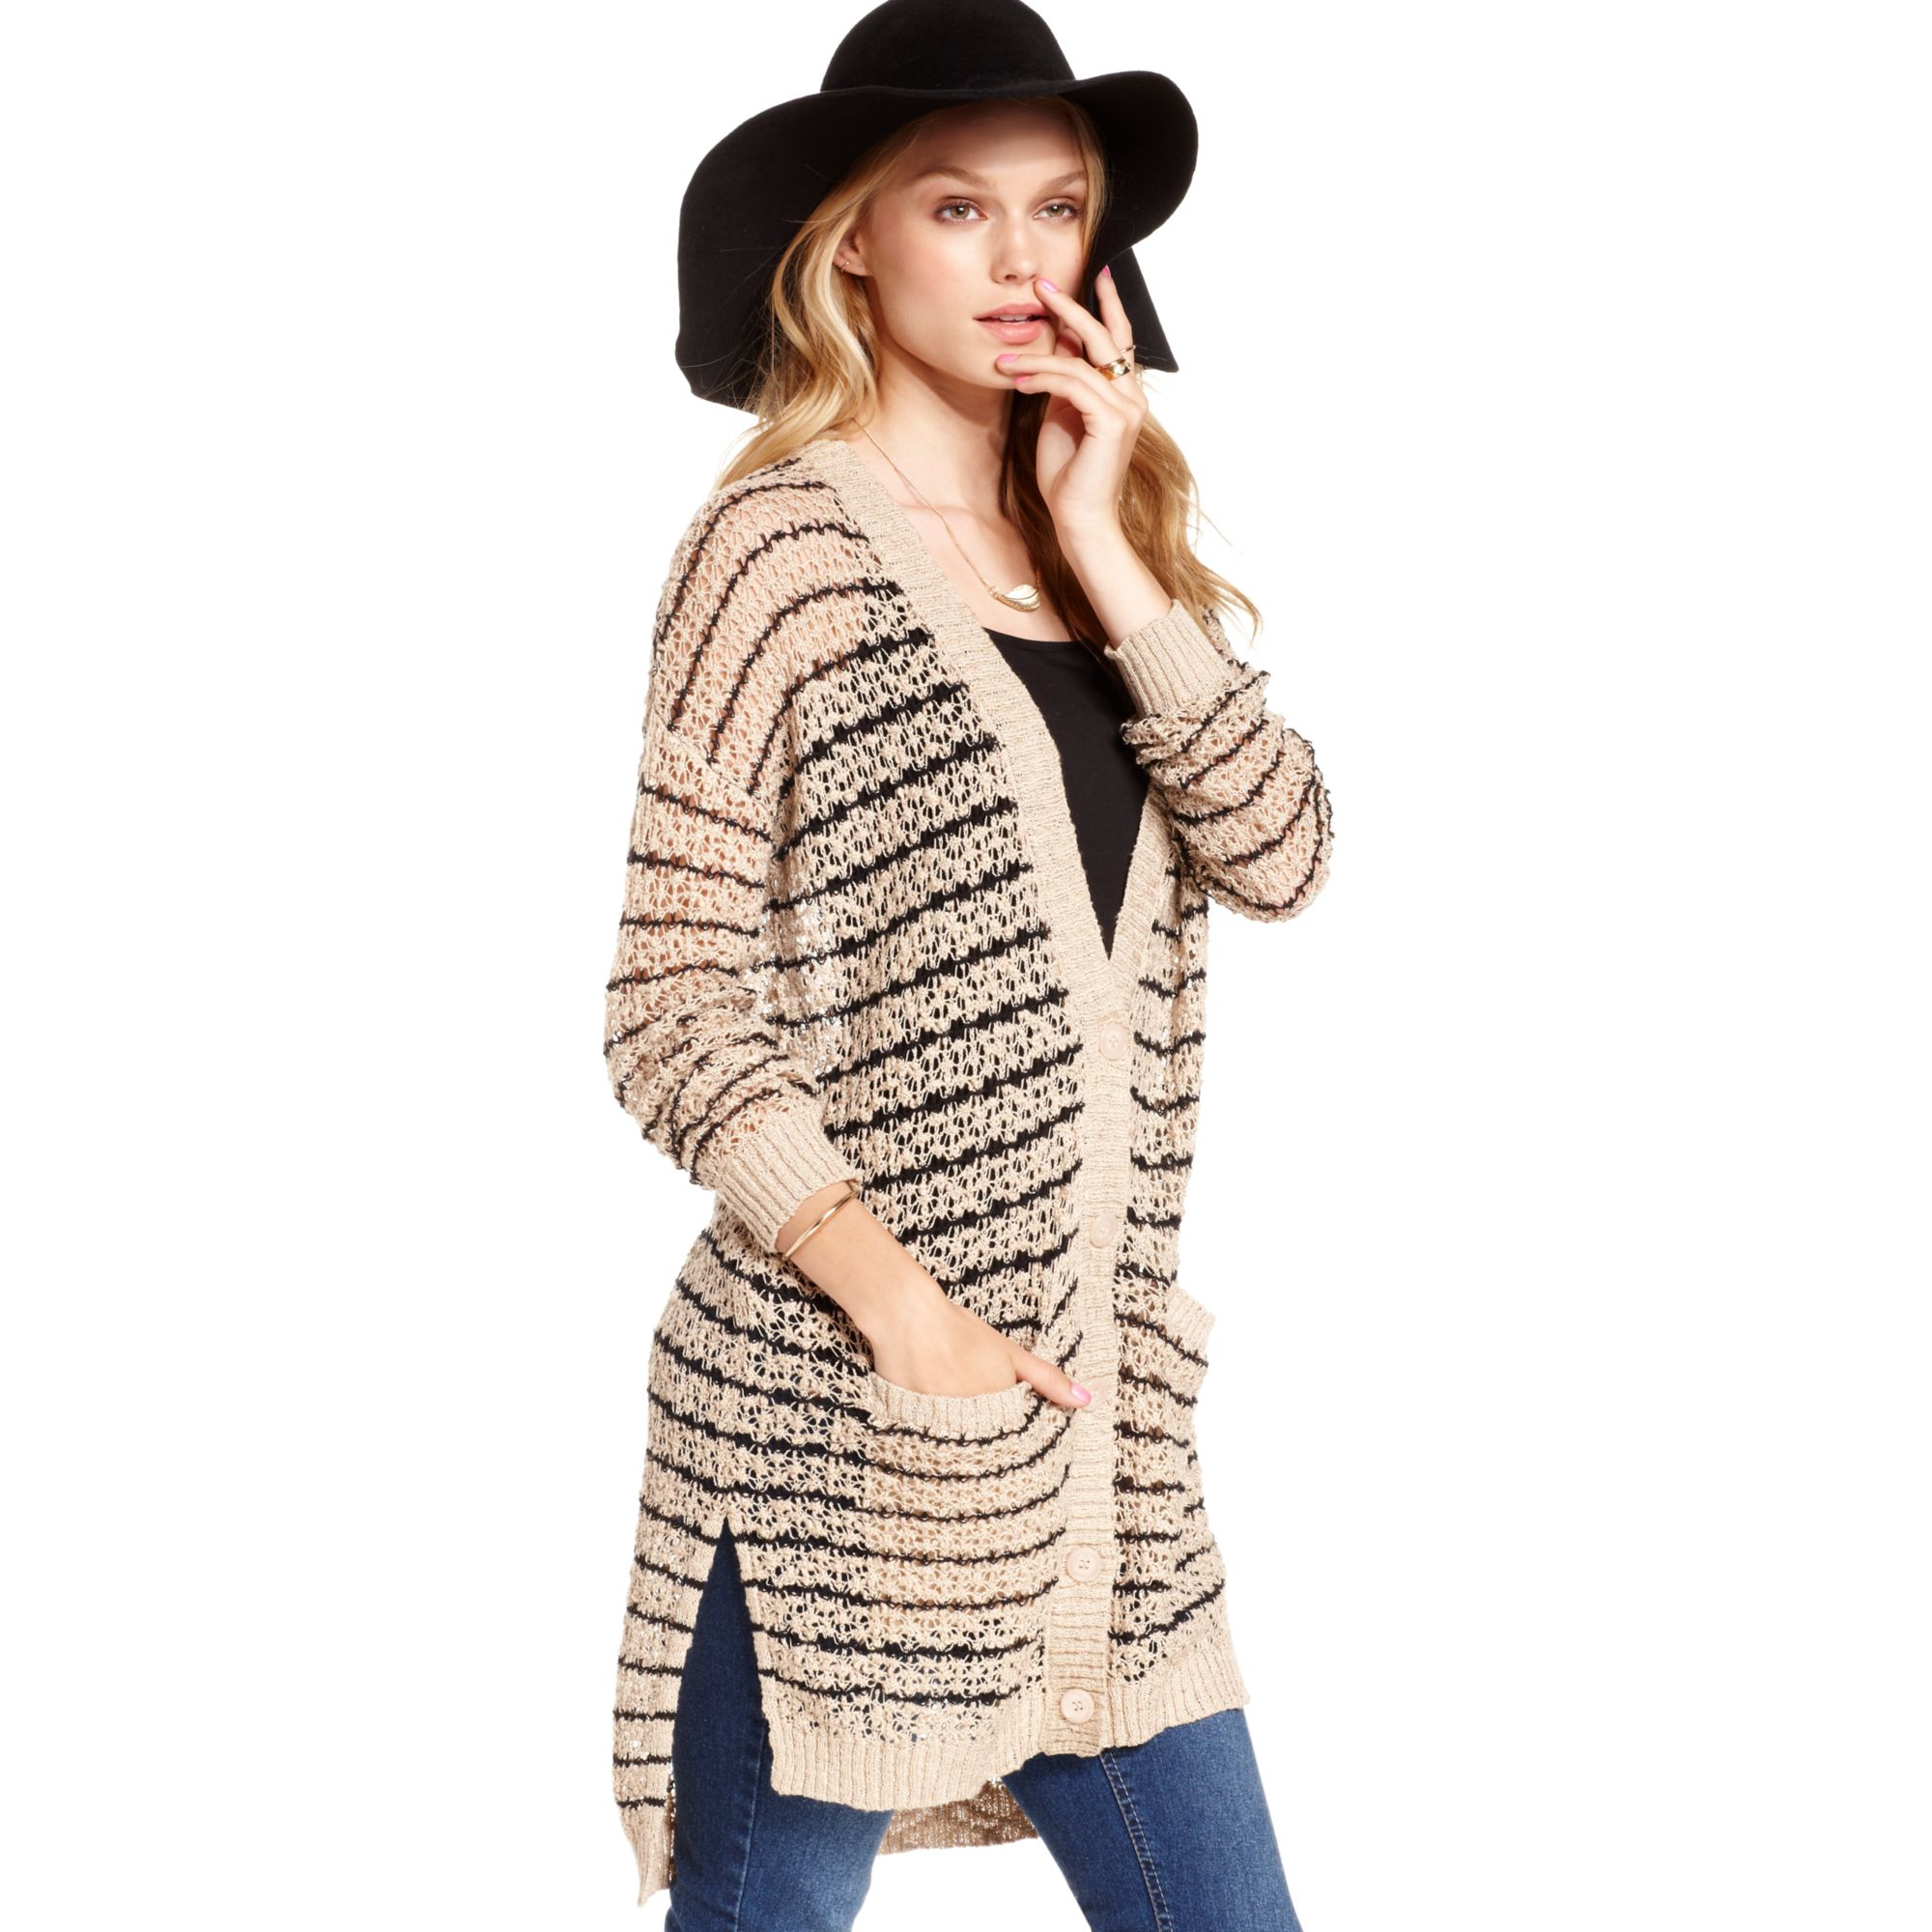 Jessica simpson Ruth Openknit Duster Cardigan in Brown | Lyst